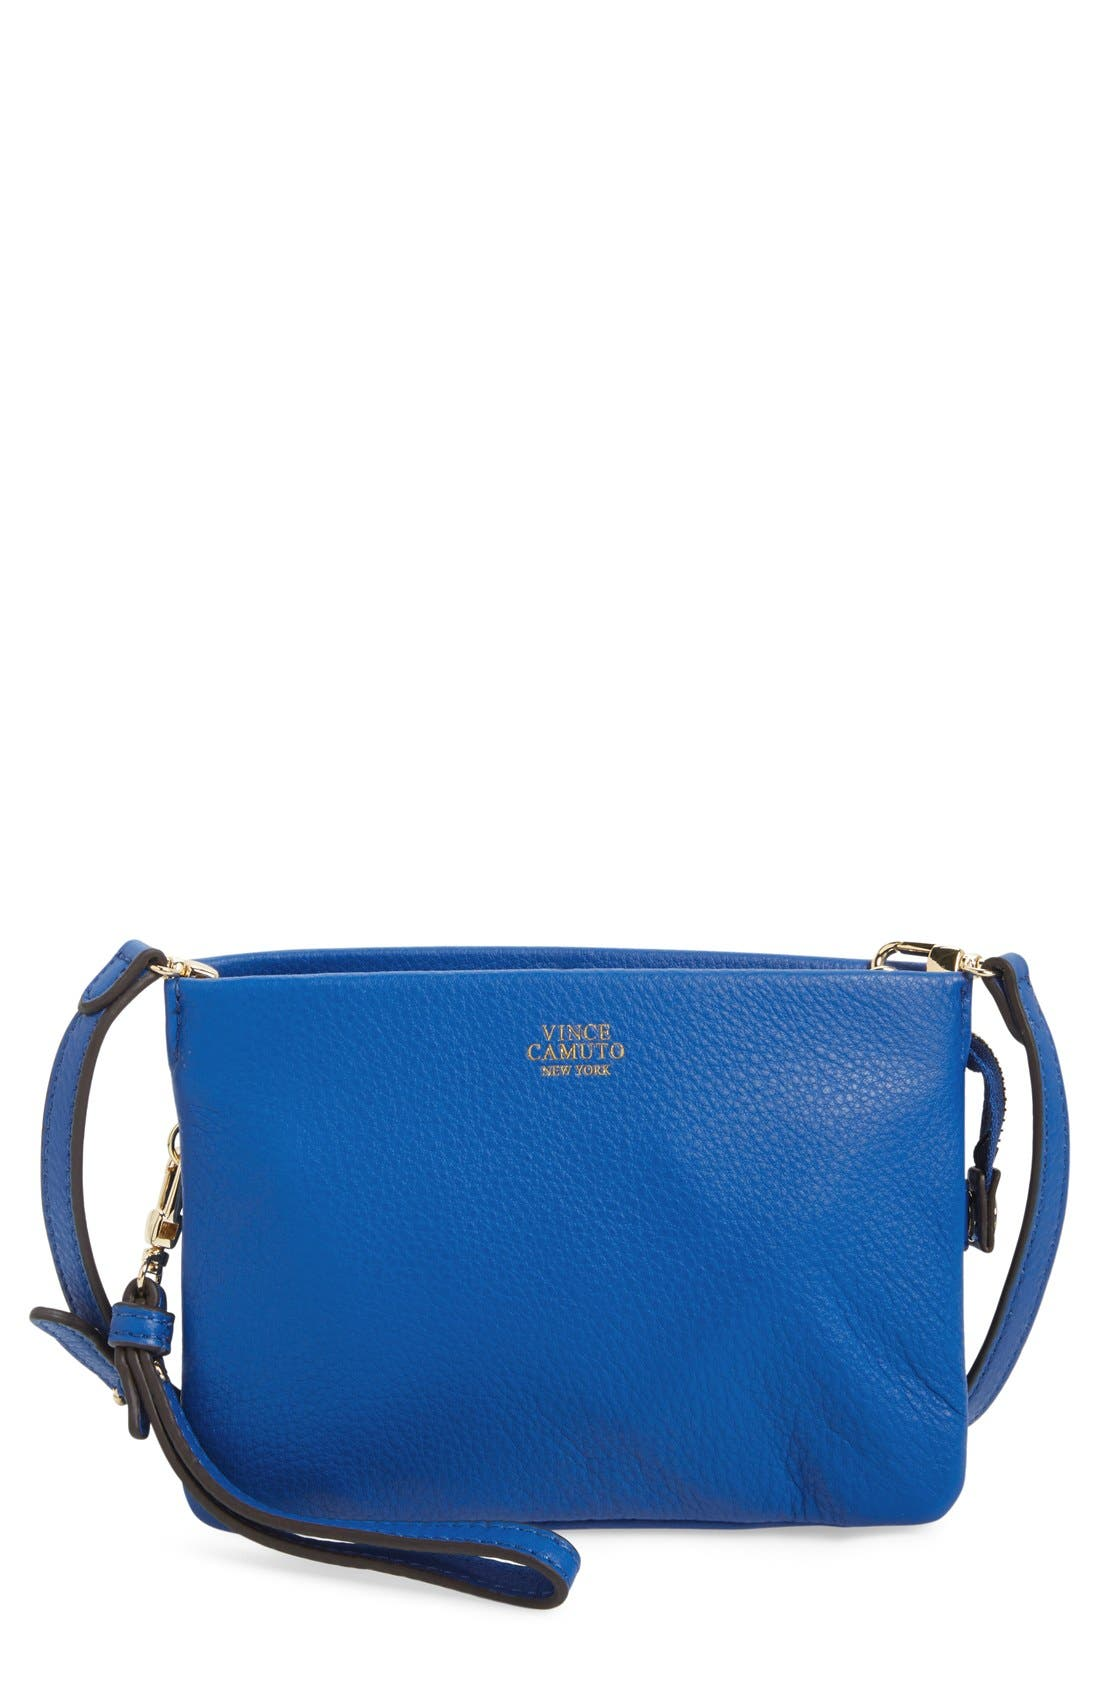 'Cami' Leather Crossbody Bag,                             Main thumbnail 17, color,